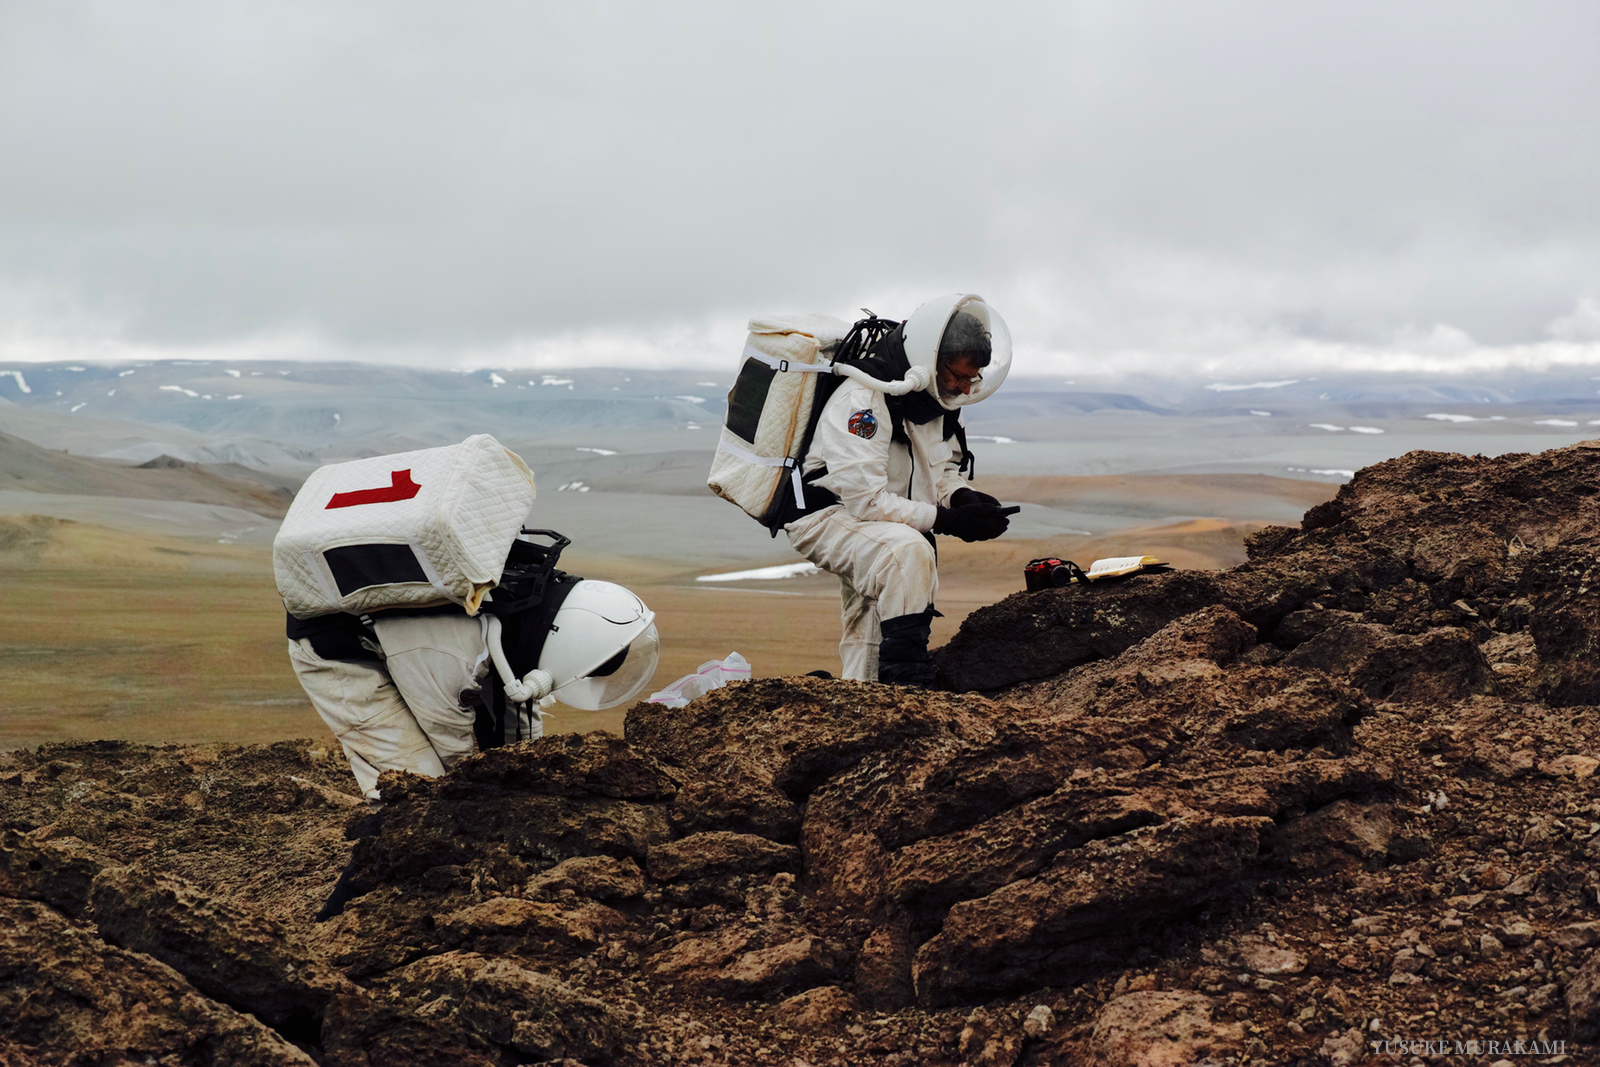 Mars simulation participants at Devon Island in the Canadian Arctic